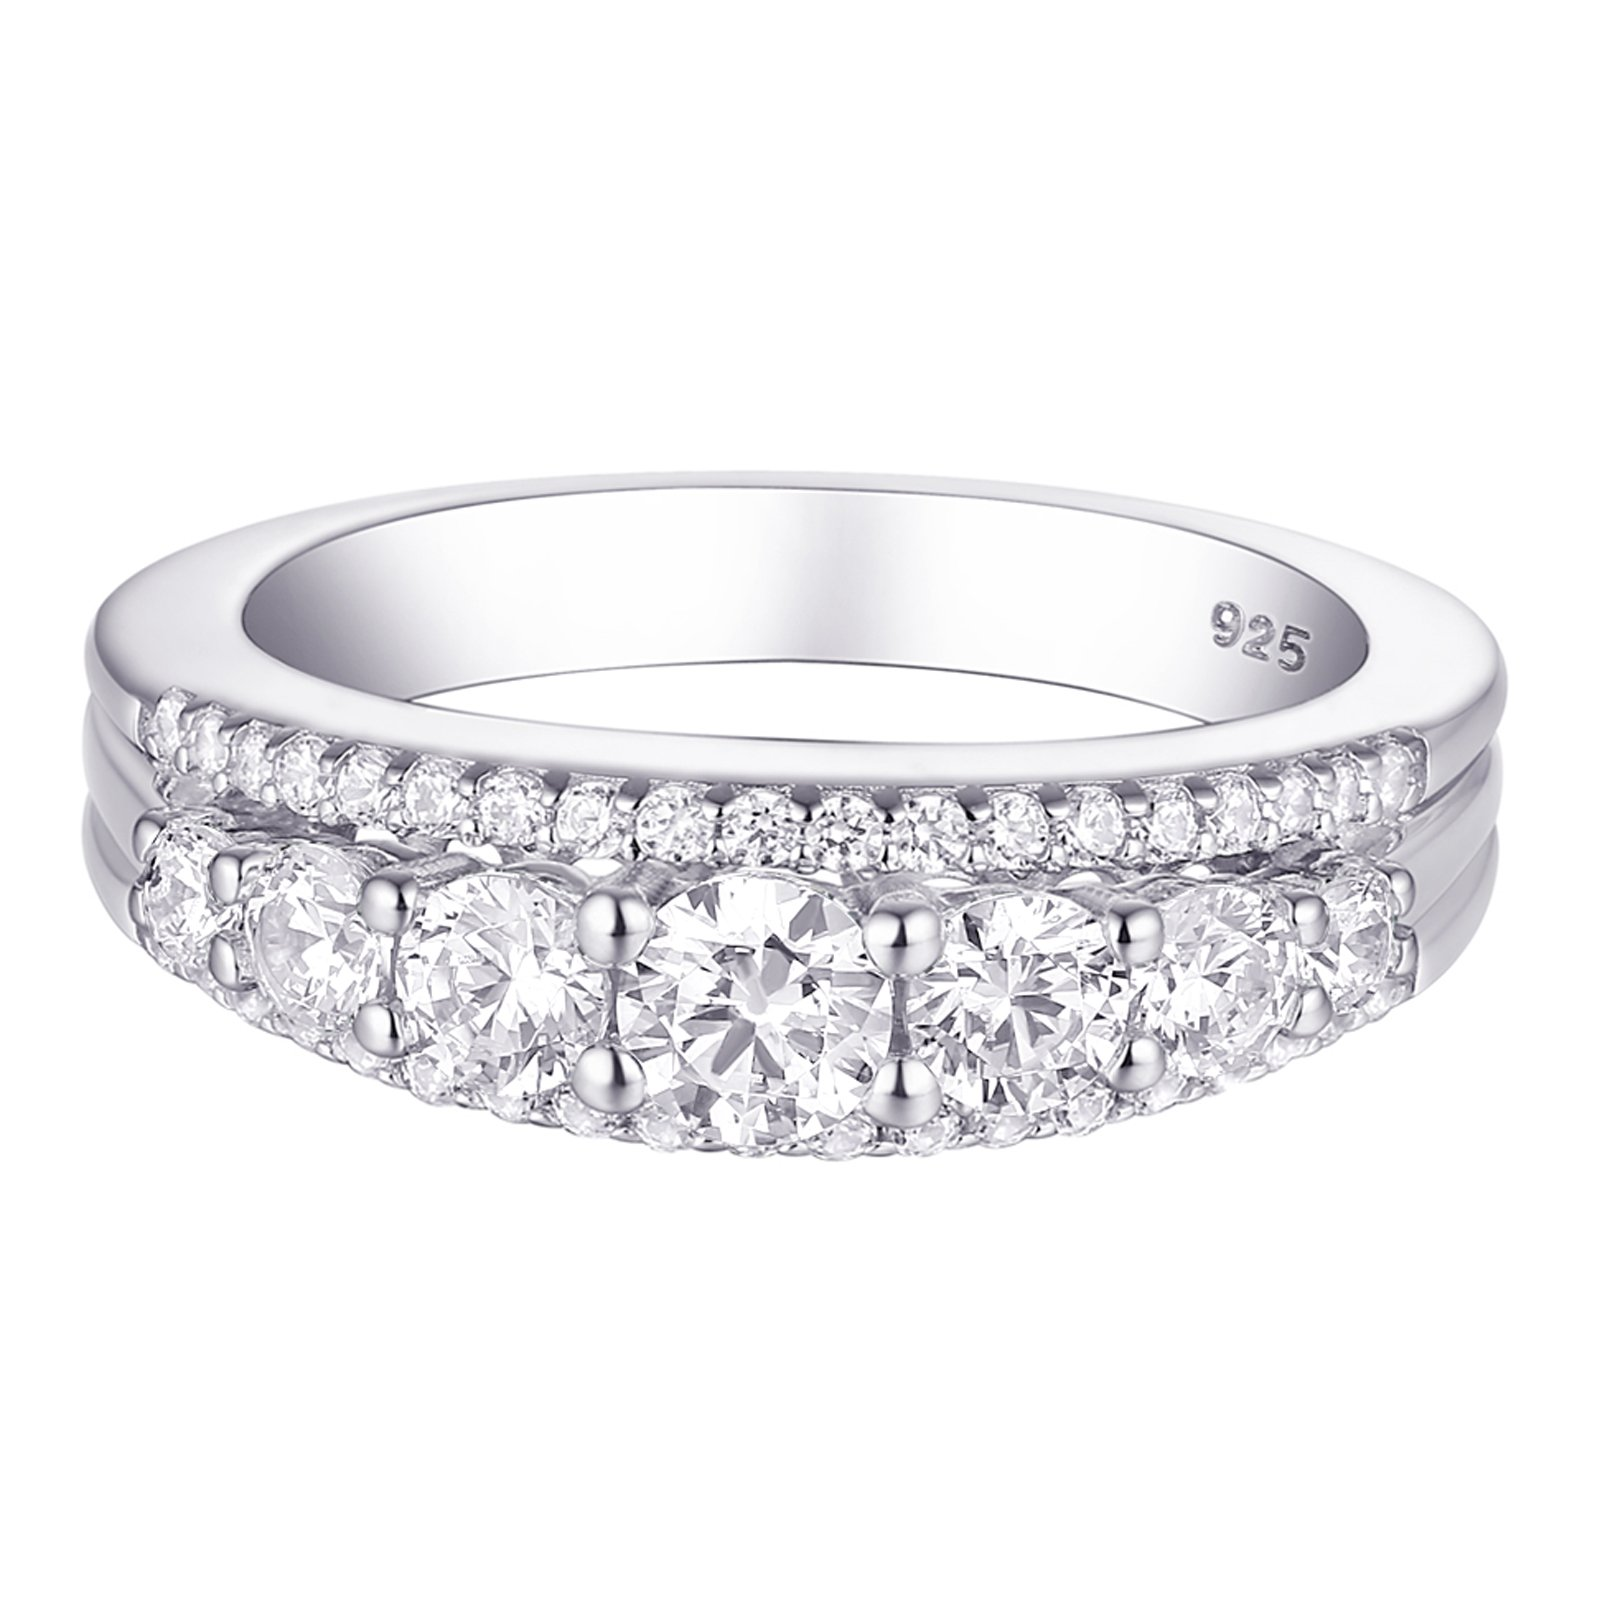 Newshe 1.13ct Round White AAA Cz 925 Sterling Silver Wedding Band Eternity Ring Size 9